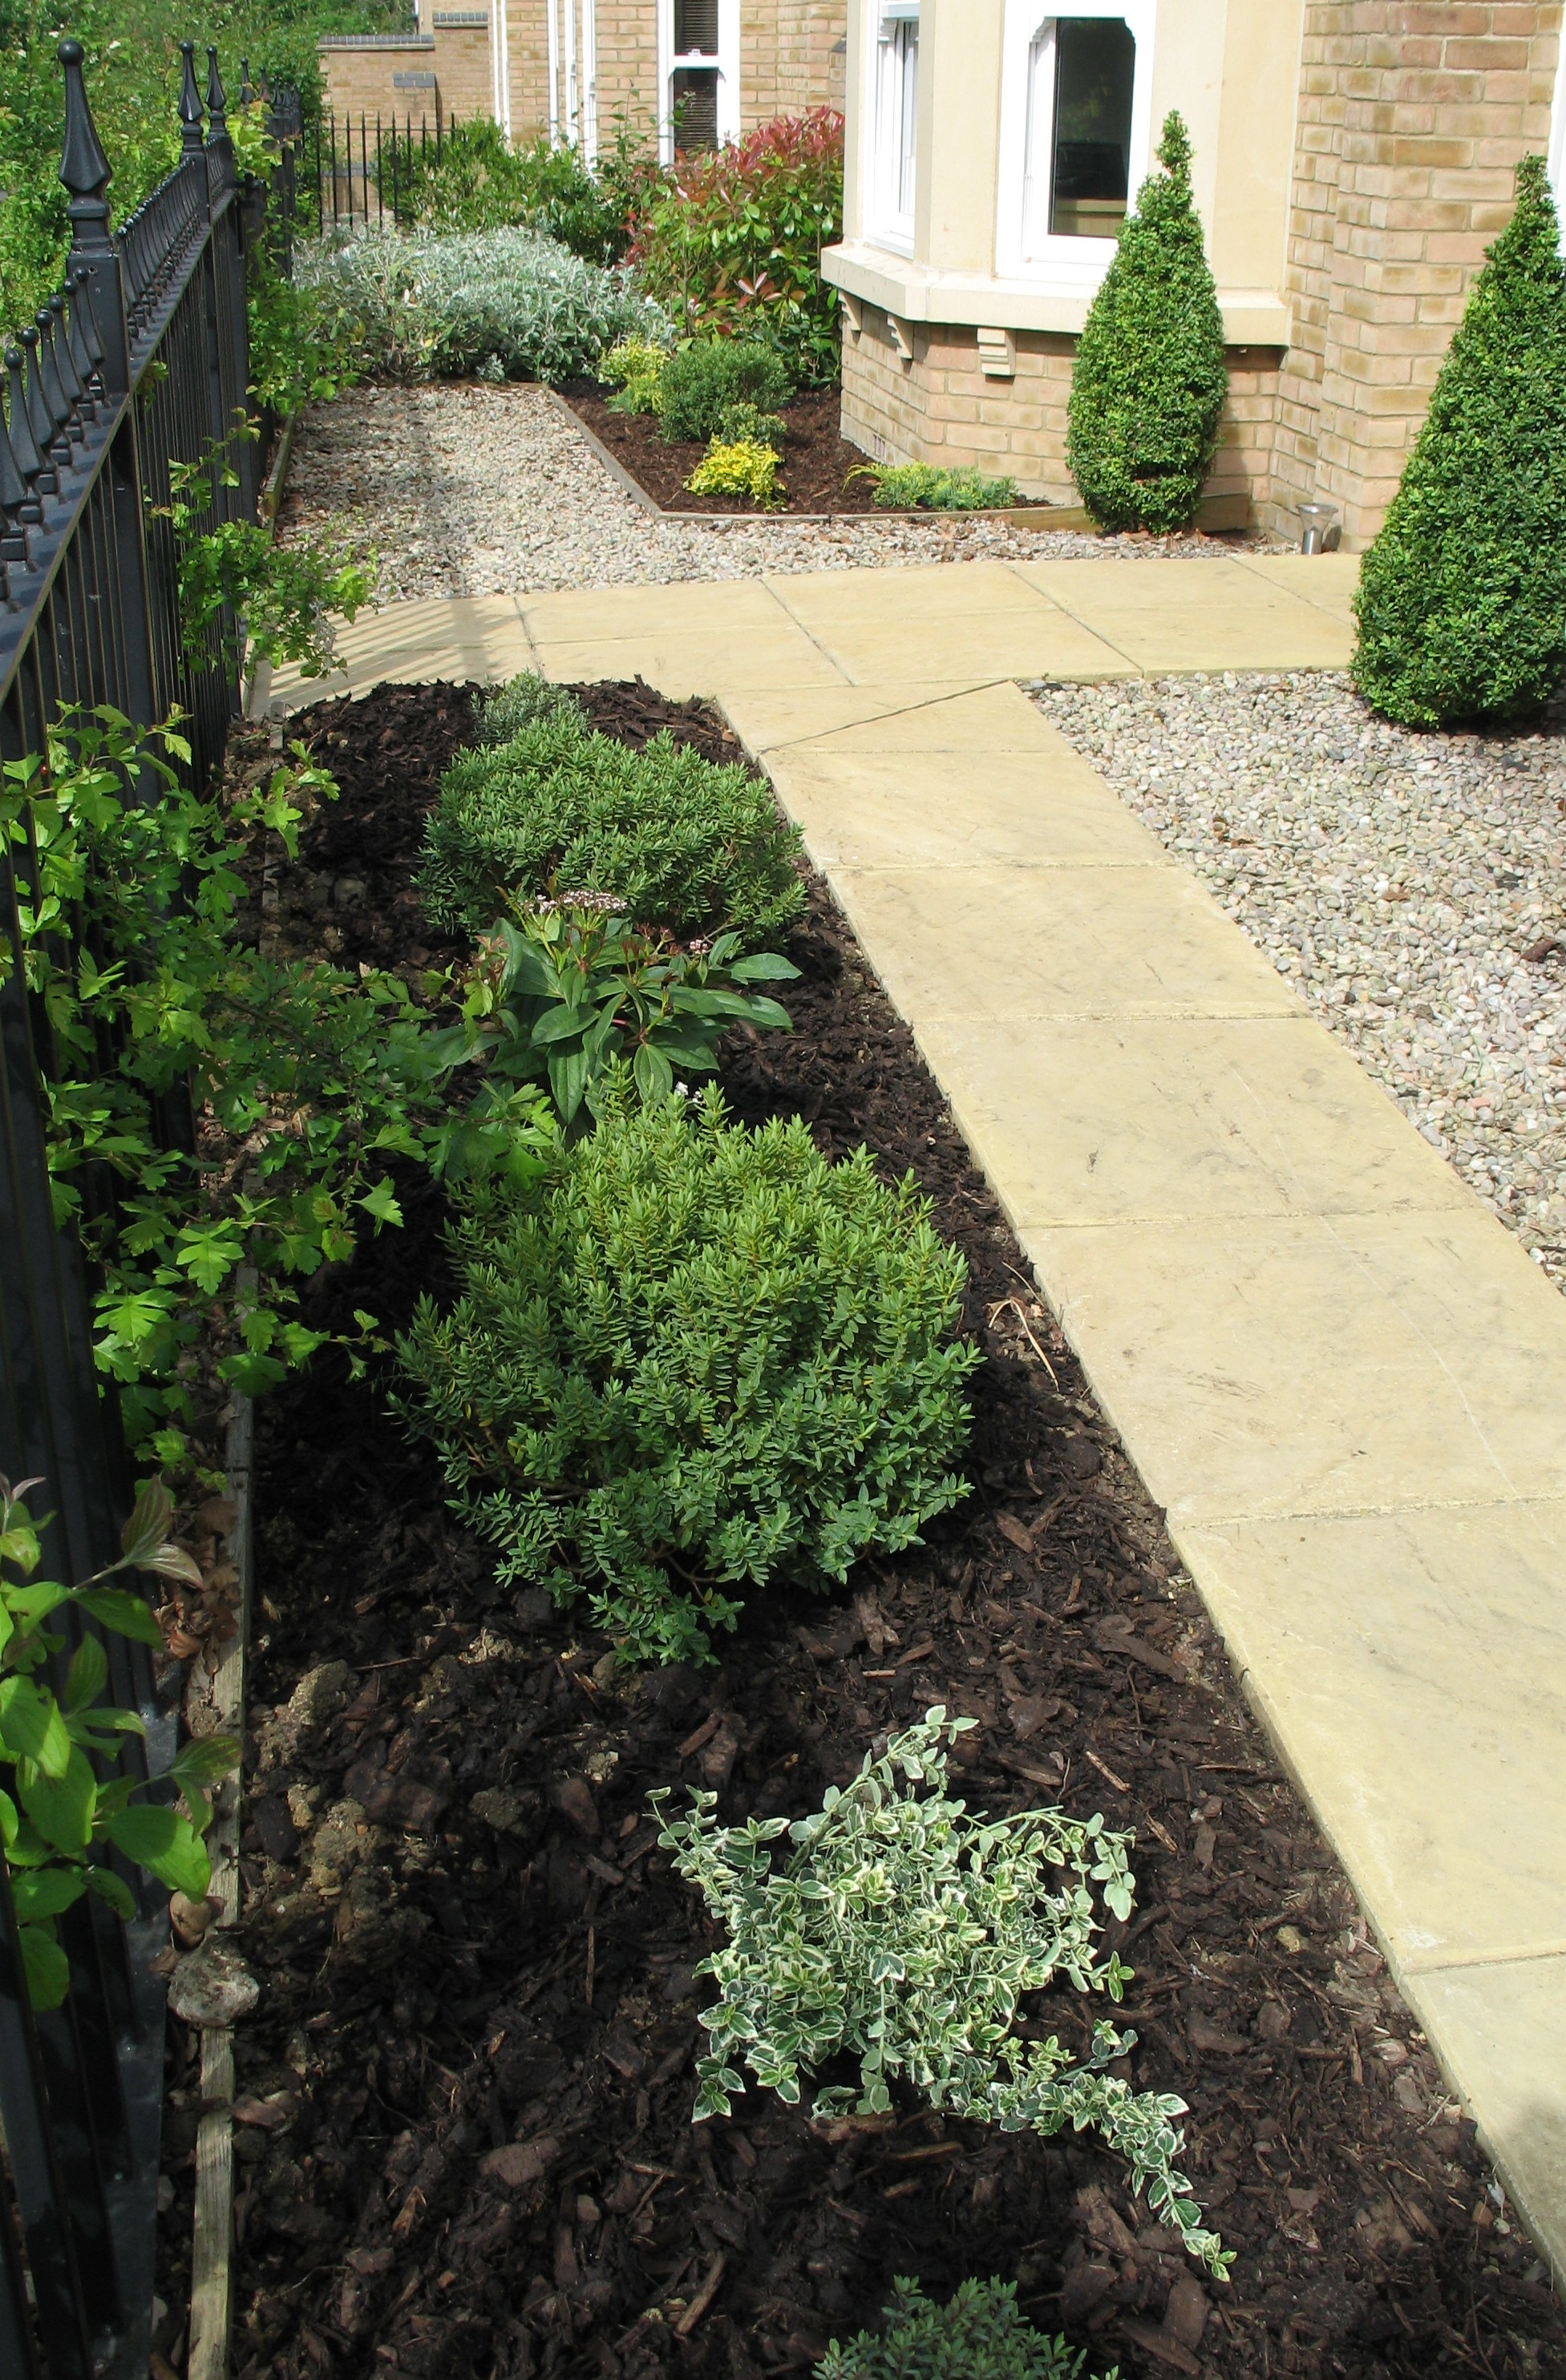 Easy plants for a front garden karen tizzard garden design for Small low maintenance gardens